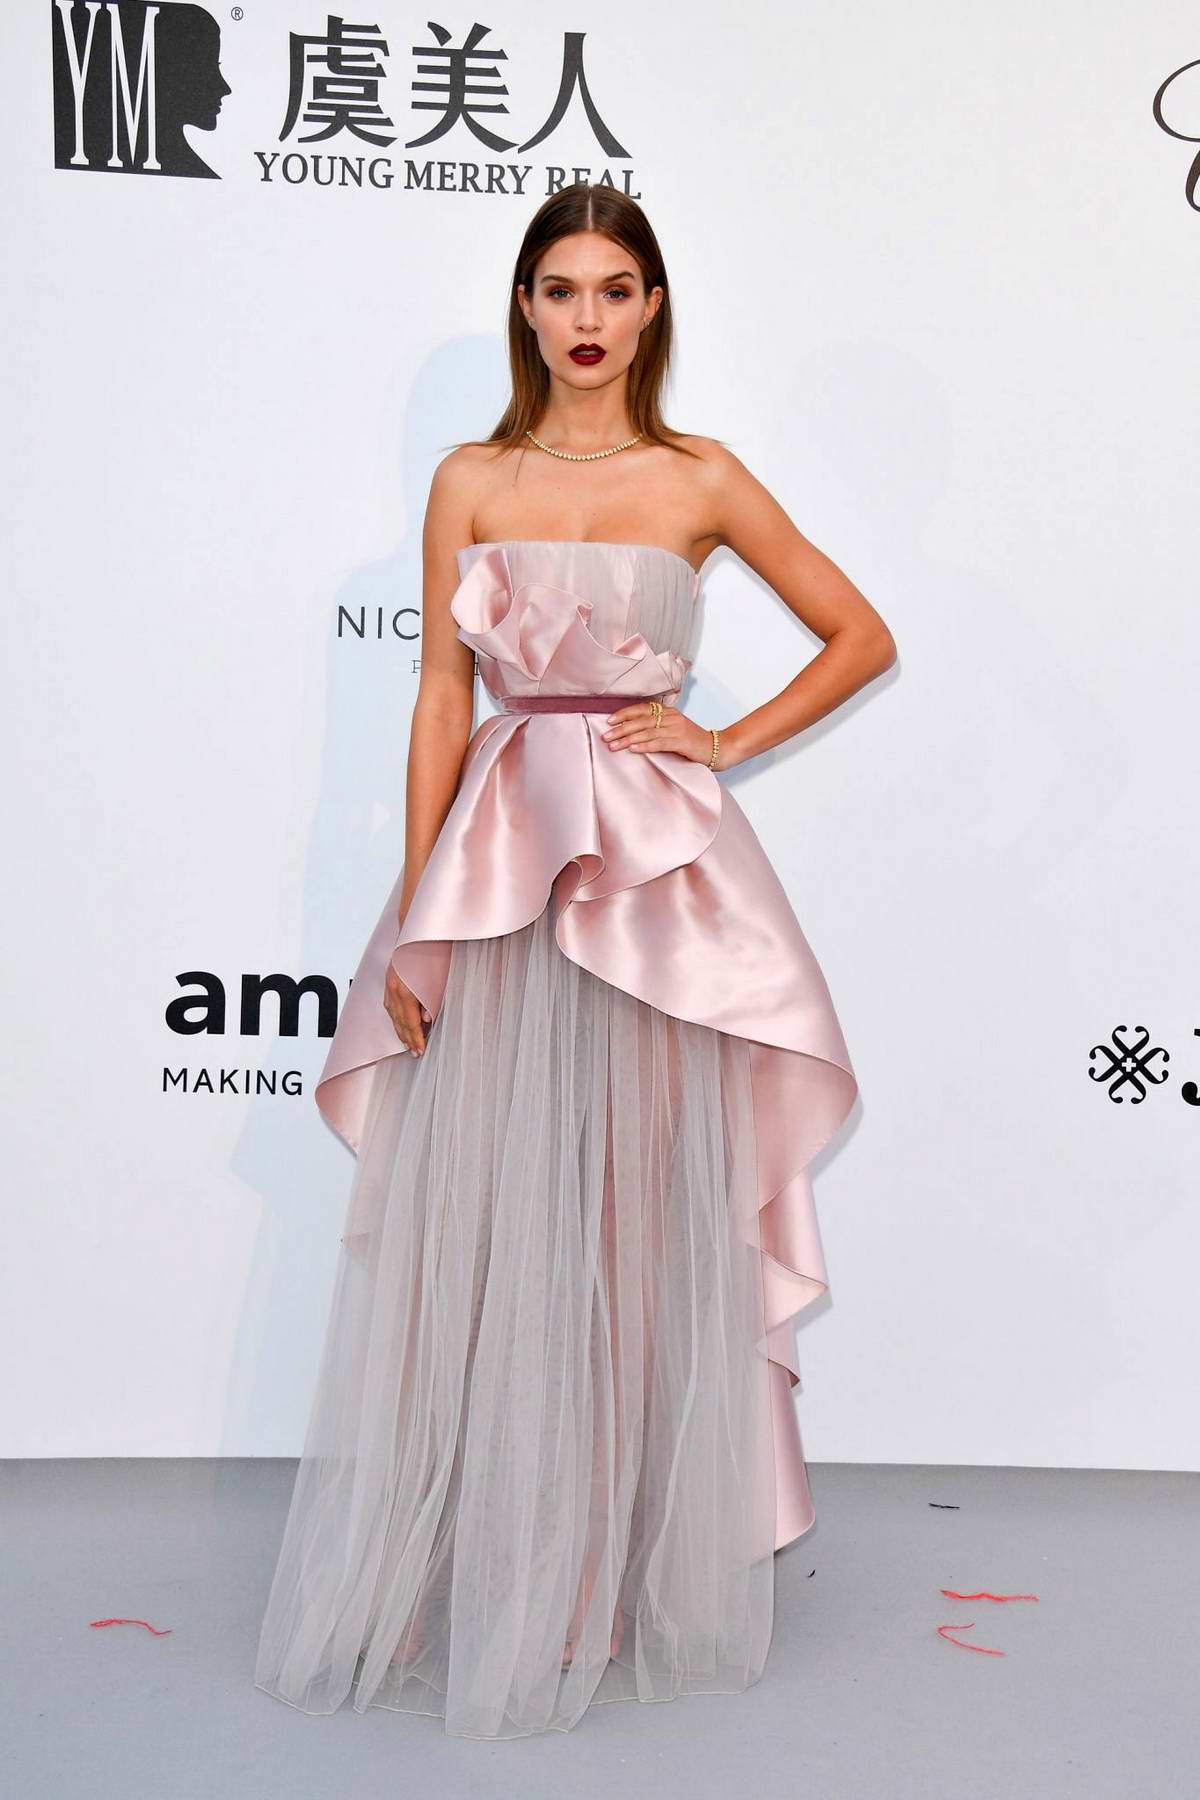 Josephine Skriver attends the 26th amfAR Gala held at Hotel du Cap-Eden-Roc during the 72nd annual Cannes Film Festival in Cannes, France